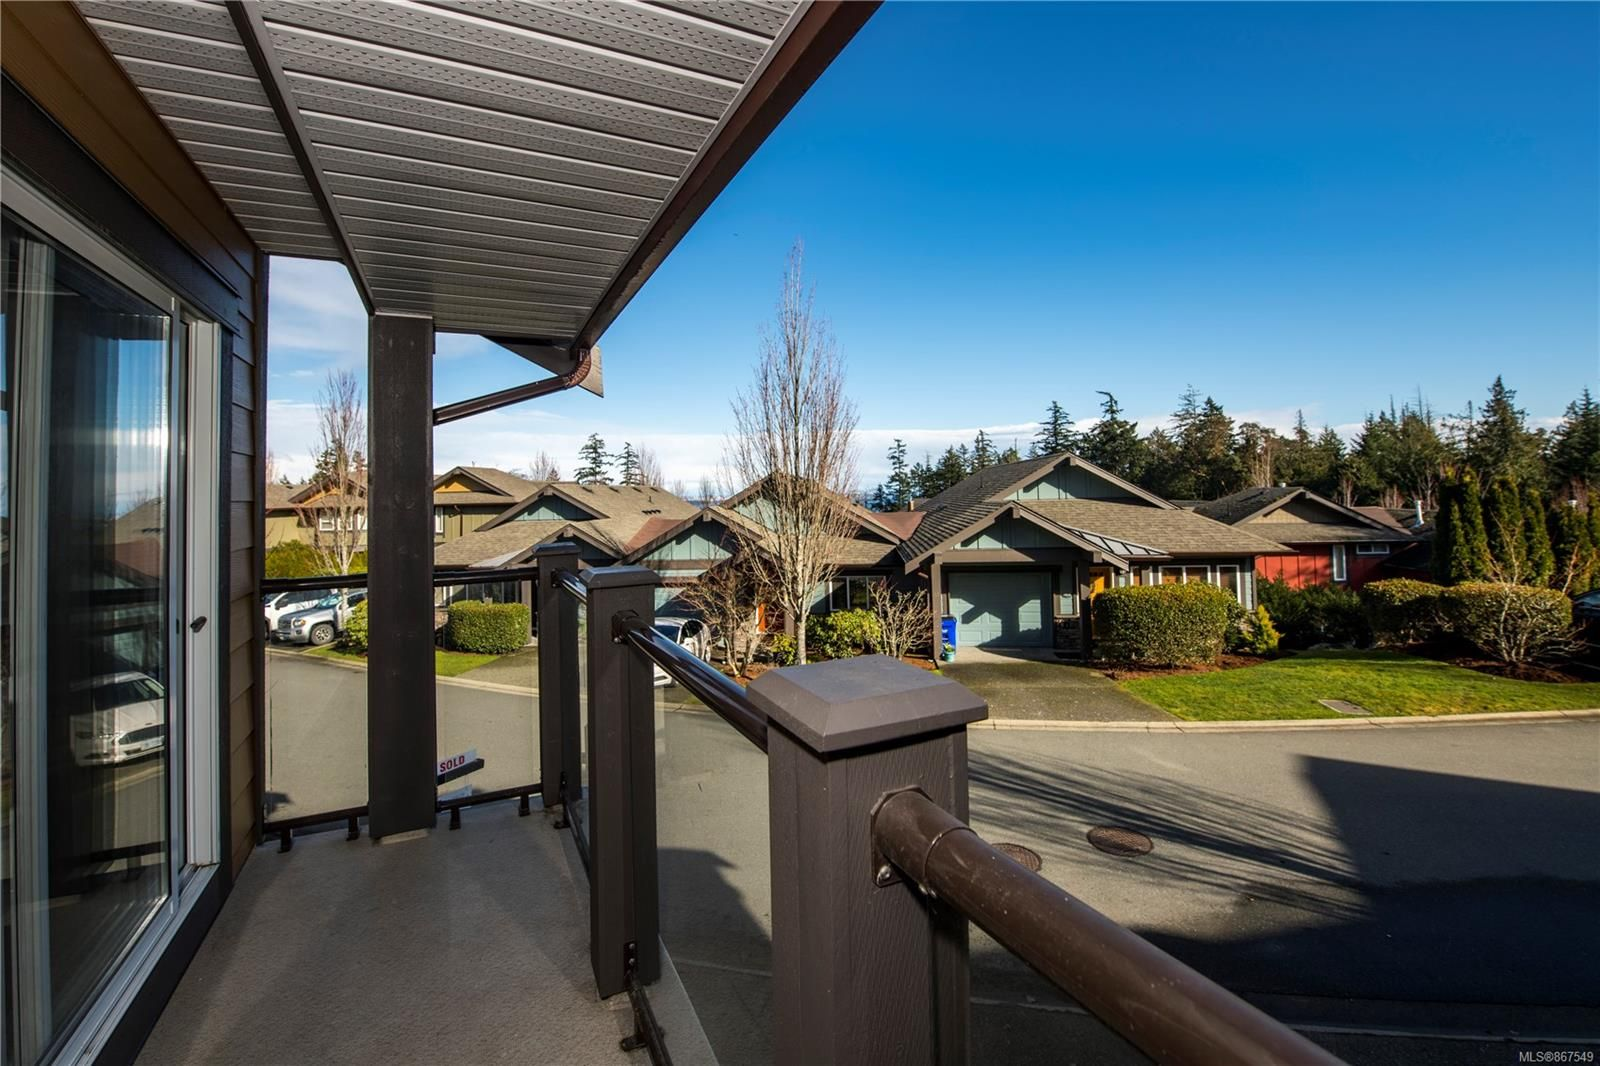 Main Photo: 46 486 Royal Bay Dr in : Co Royal Bay Row/Townhouse for sale (Colwood)  : MLS®# 867549